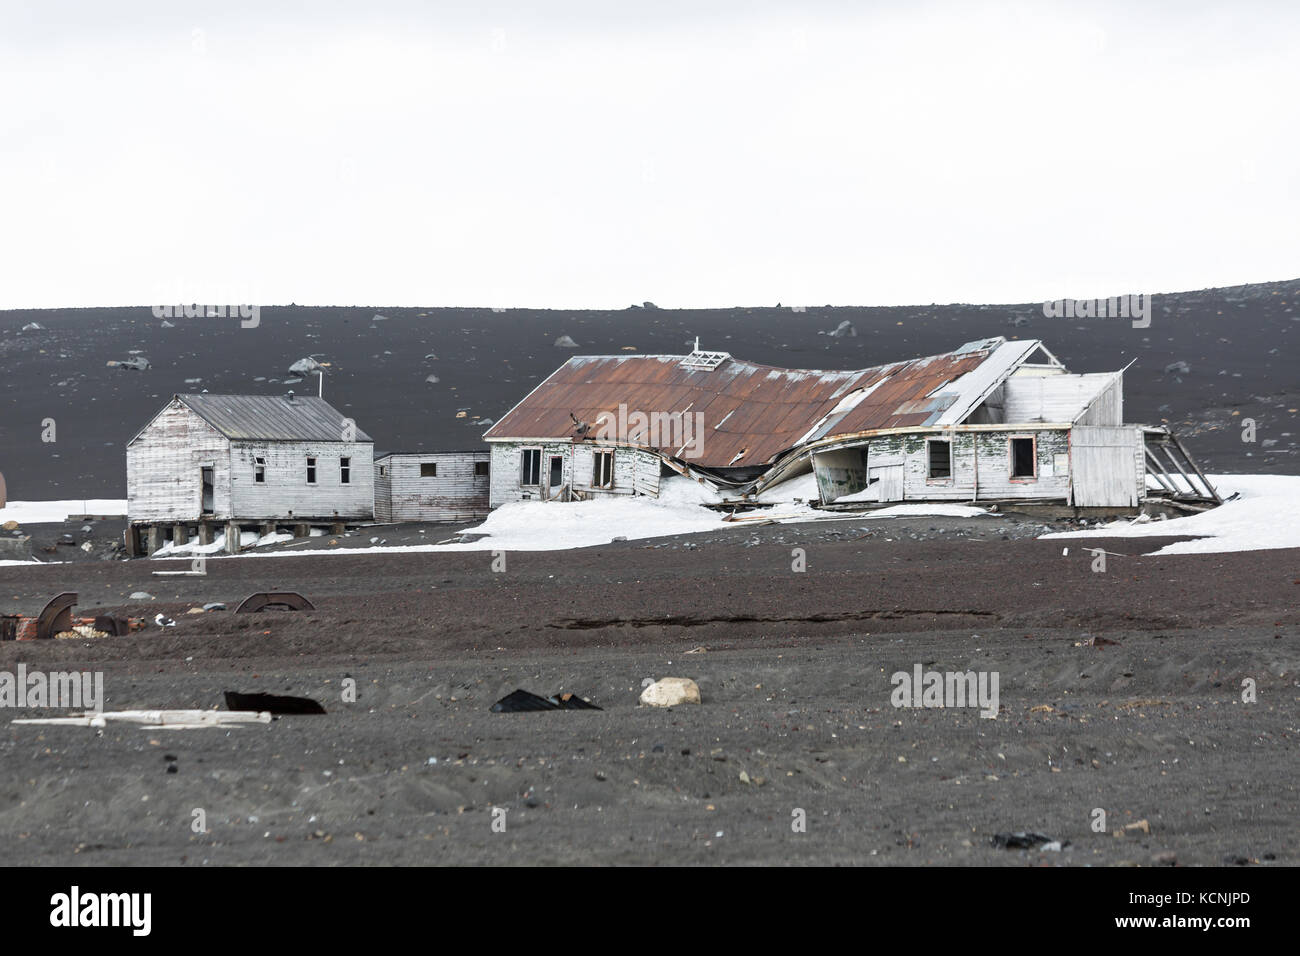 Abandoned buildings slowly give in to the elements in the bleak and harsh environment on Deception Island, South - Stock Image